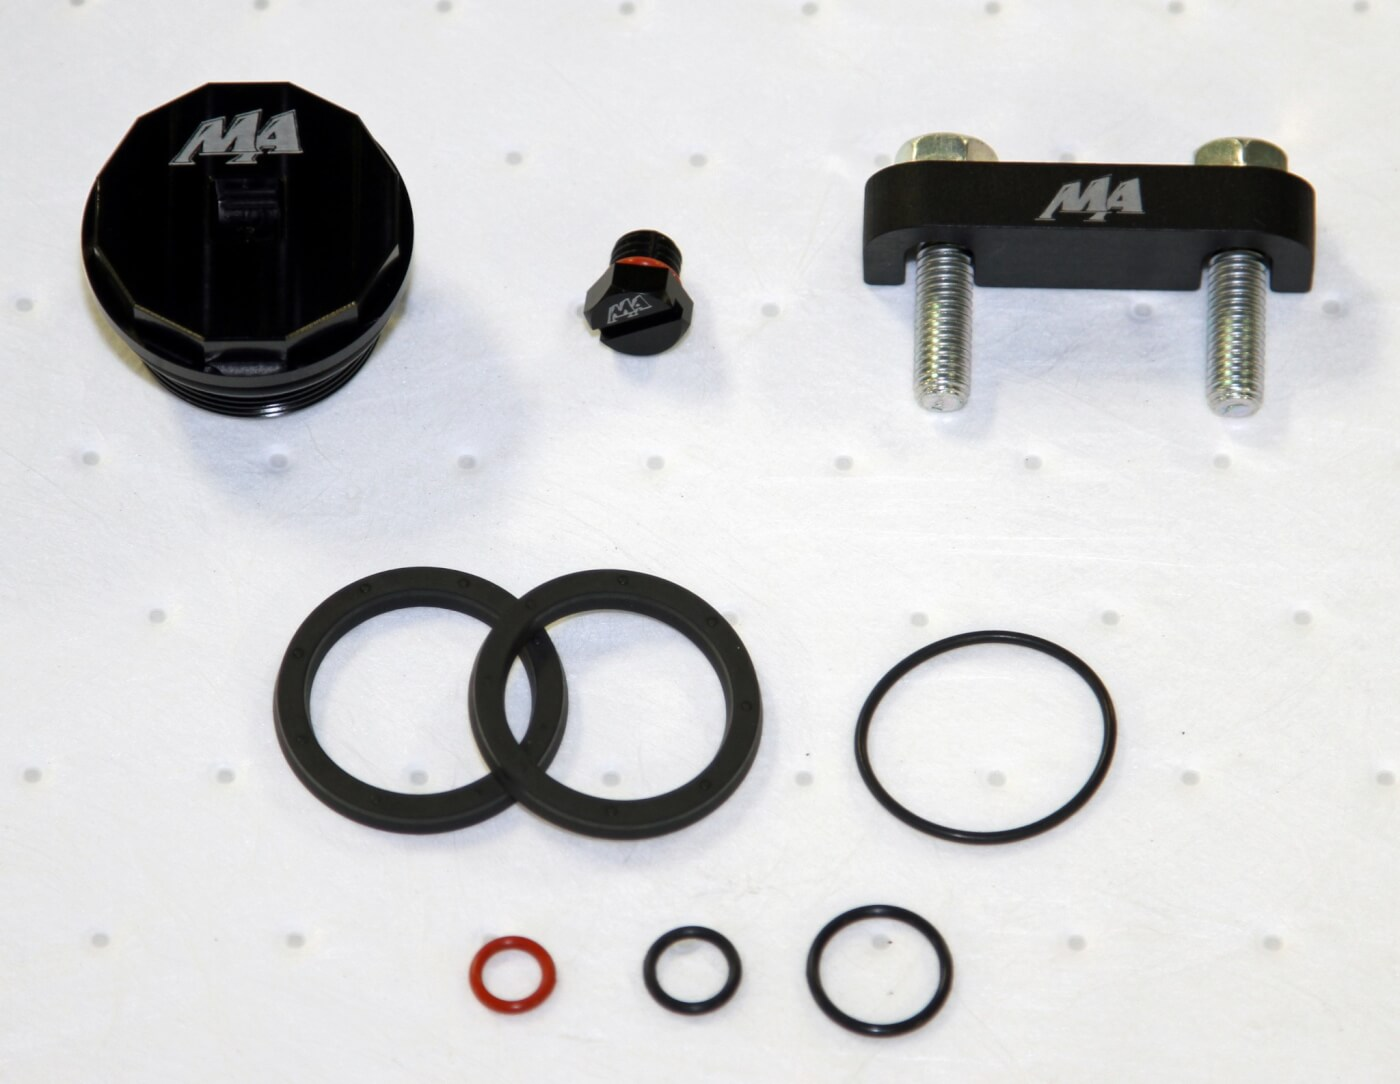 hight resolution of merchant automotive s master filter head kit includes everything seen here as well as a